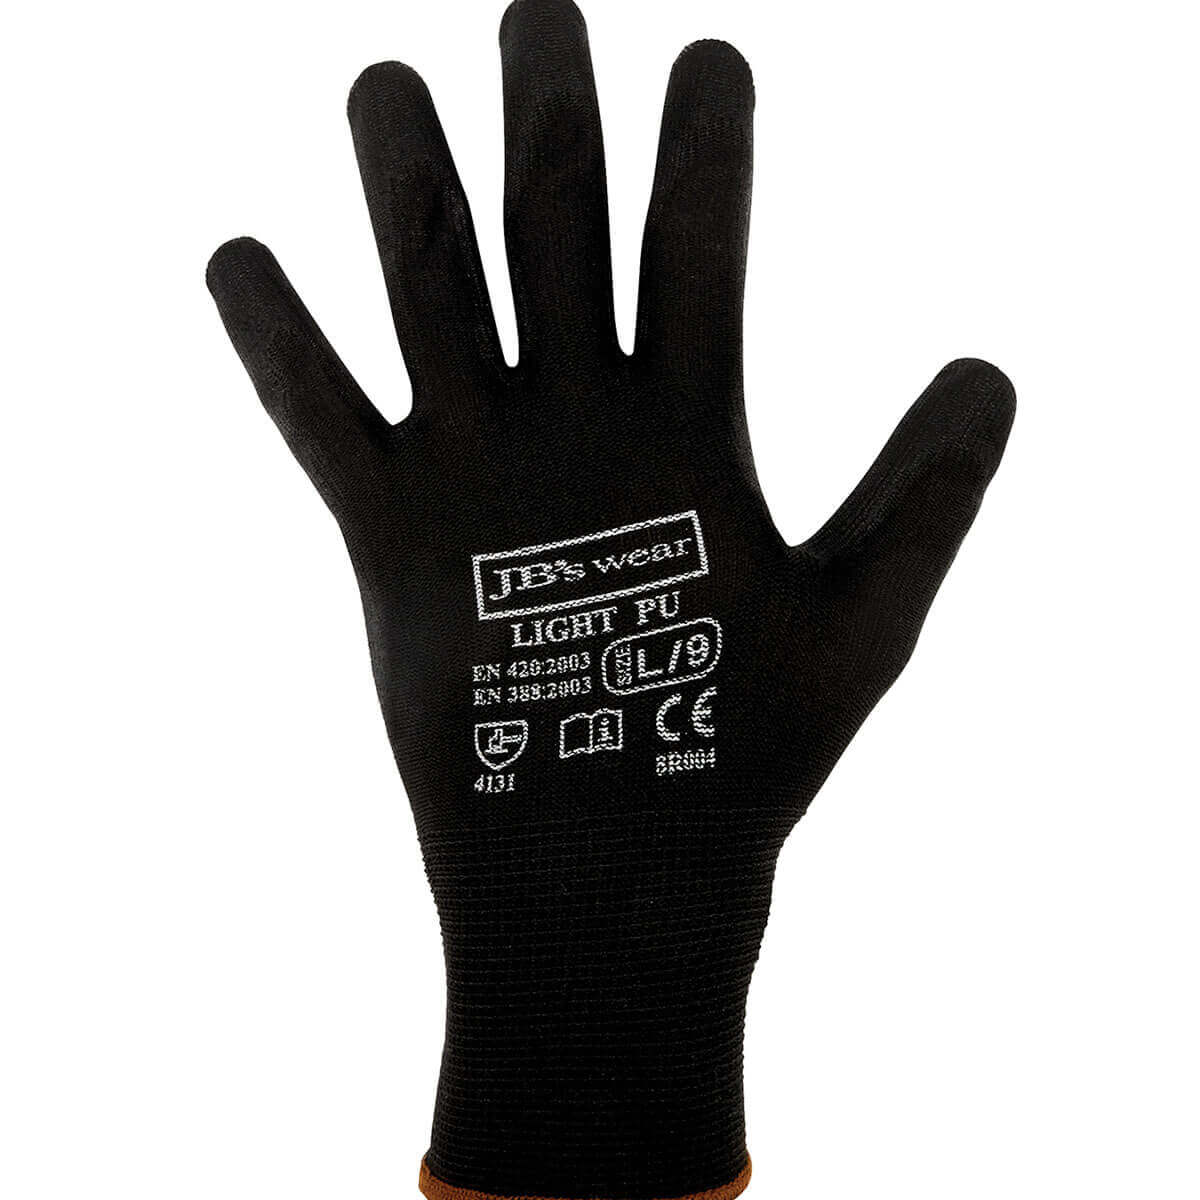 Black Light Pu Glove